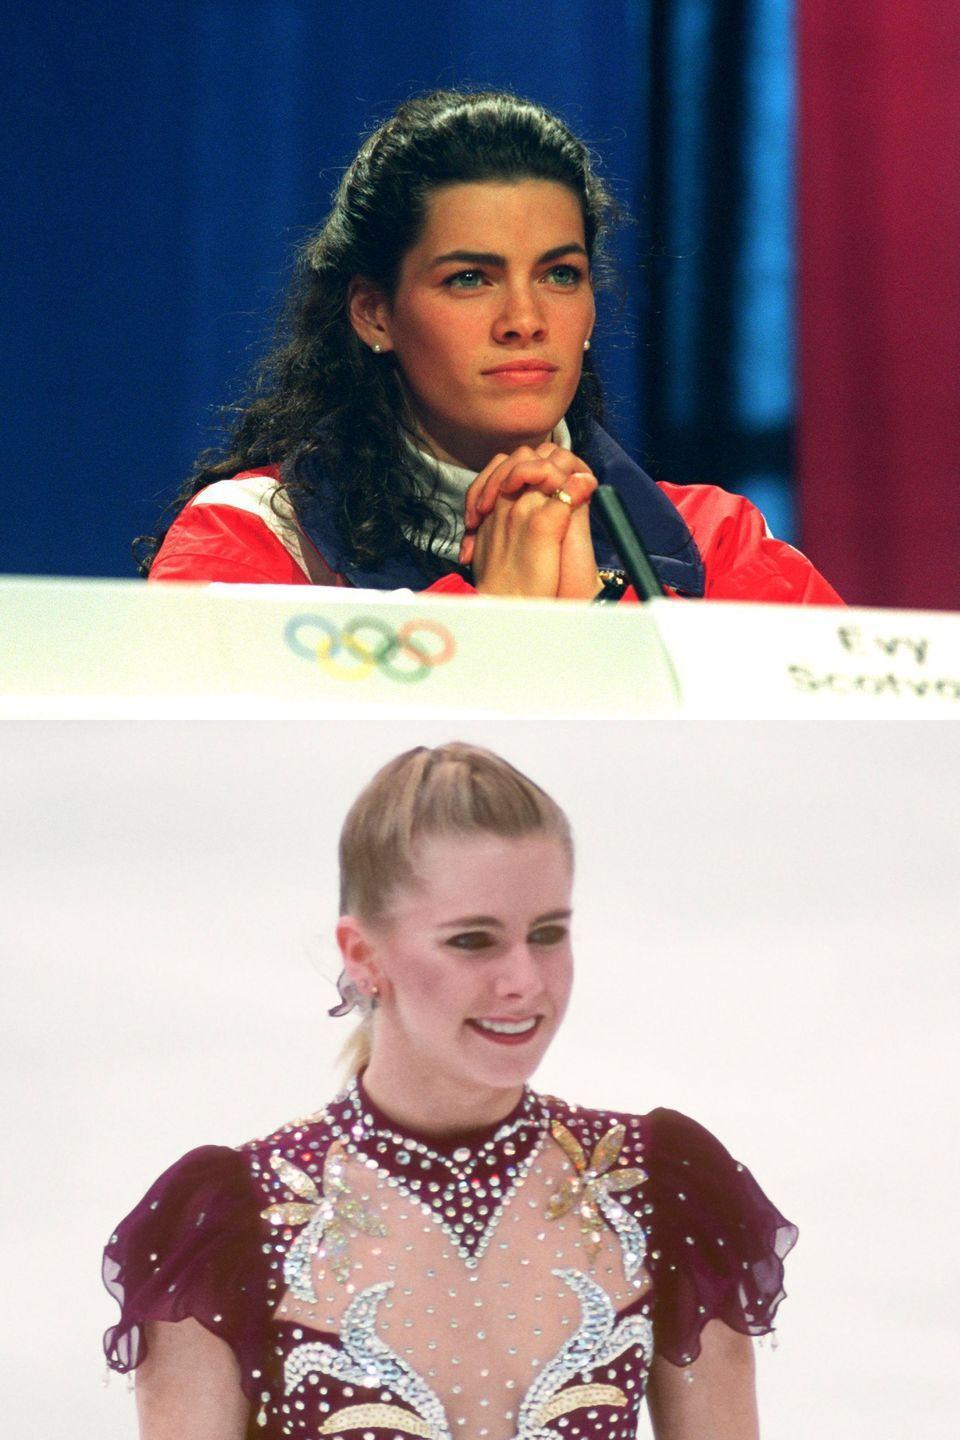 "<p>These ice princesses were both at the top of their game when <a href=""http://www.marieclaire.com/celebrity/a25649/tonya-harding-nancy-kerrigan-feud/"" rel=""nofollow noopener"" target=""_blank"" data-ylk=""slk:Kerrigan was brutally attacked"" class=""link rapid-noclick-resp"">Kerrigan was brutally attacked</a> after a practice for the U.S. Figure Skating Championships. As Kerrigan lay on the ground famously crying, <a href=""https://youtu.be/voUMQrLy_uY?t=32s"" rel=""nofollow noopener"" target=""_blank"" data-ylk=""slk:&quot;Why? Why? Why?&quot;"" class=""link rapid-noclick-resp"">""Why? Why? Why?""</a> the scandal became a national obsession. As it turned out, Harding's ex-husband had hired help to break Kerrigan's leg so rival Tonya could skate her way to victory at the Olympics six weeks later. With a limp and a bruise, Kerrigan was unable to compete at the Championships the next day, handing Harding the win. But Kerrigan had the last laugh, recovering in time for the Olympics and defeating her rival.</p>"